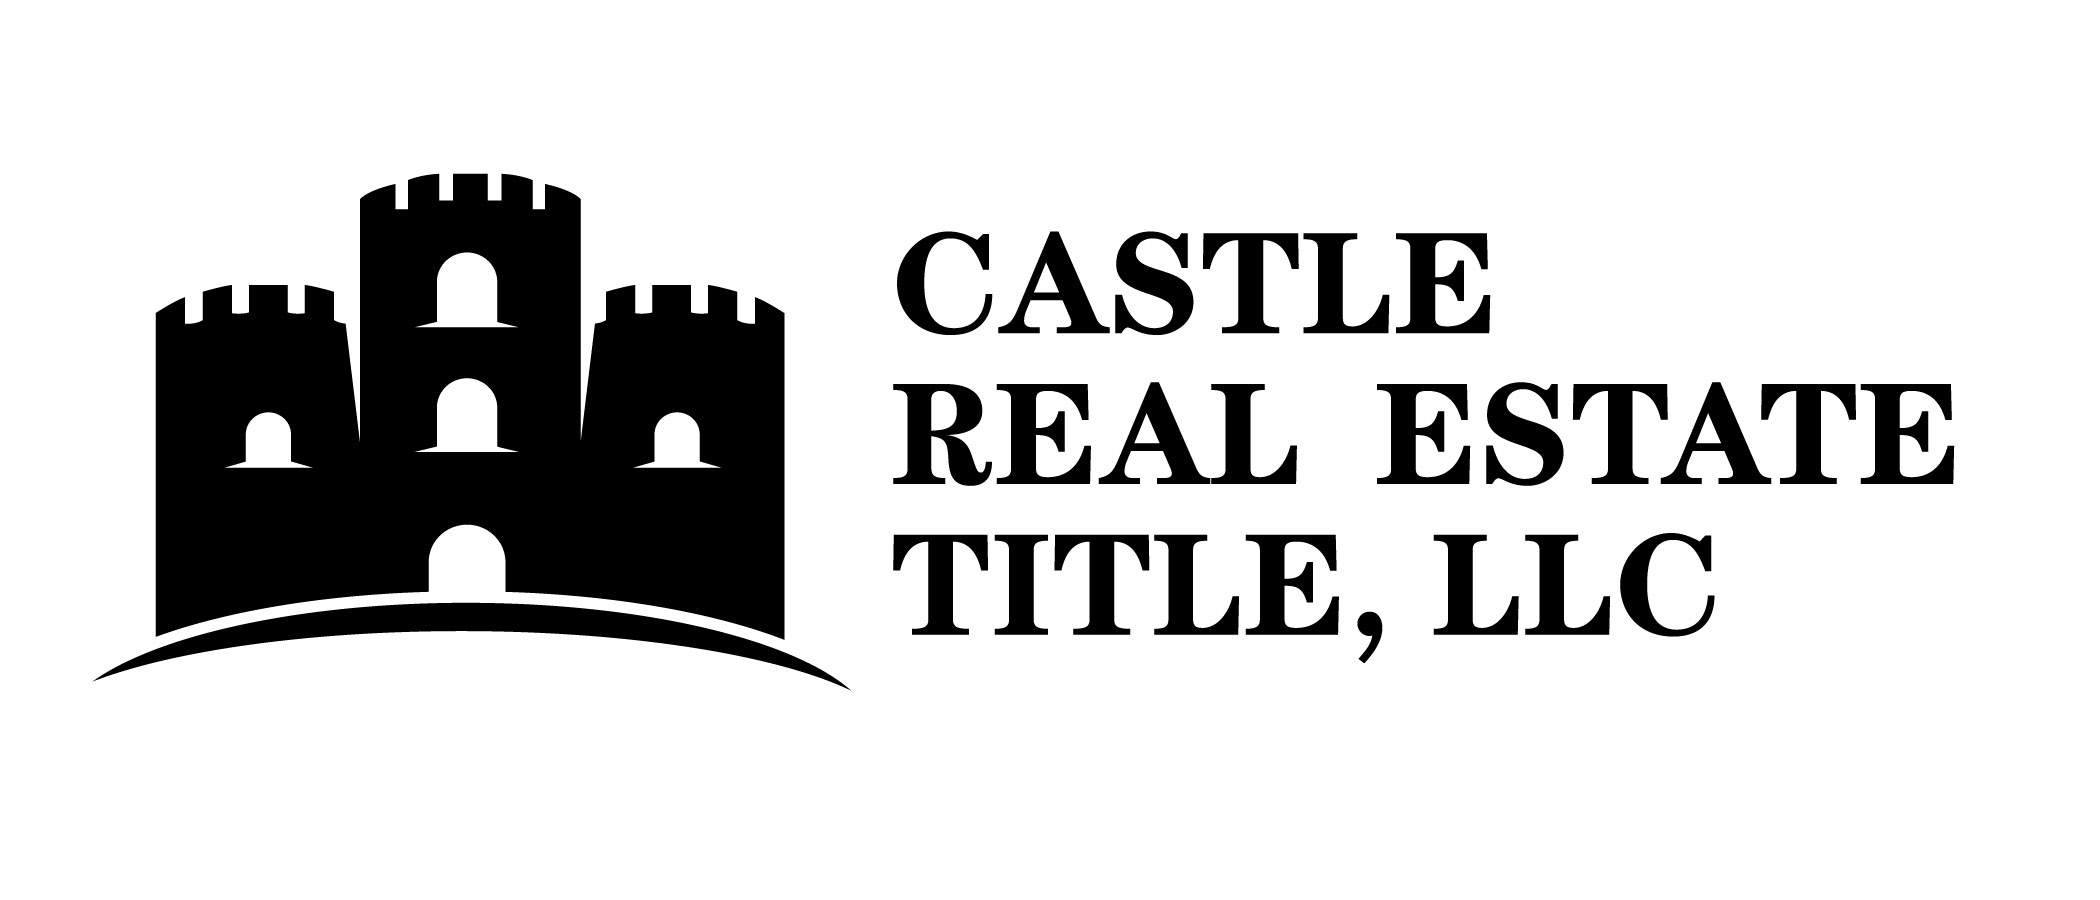 Castle Real Estate - LOGO.jpg